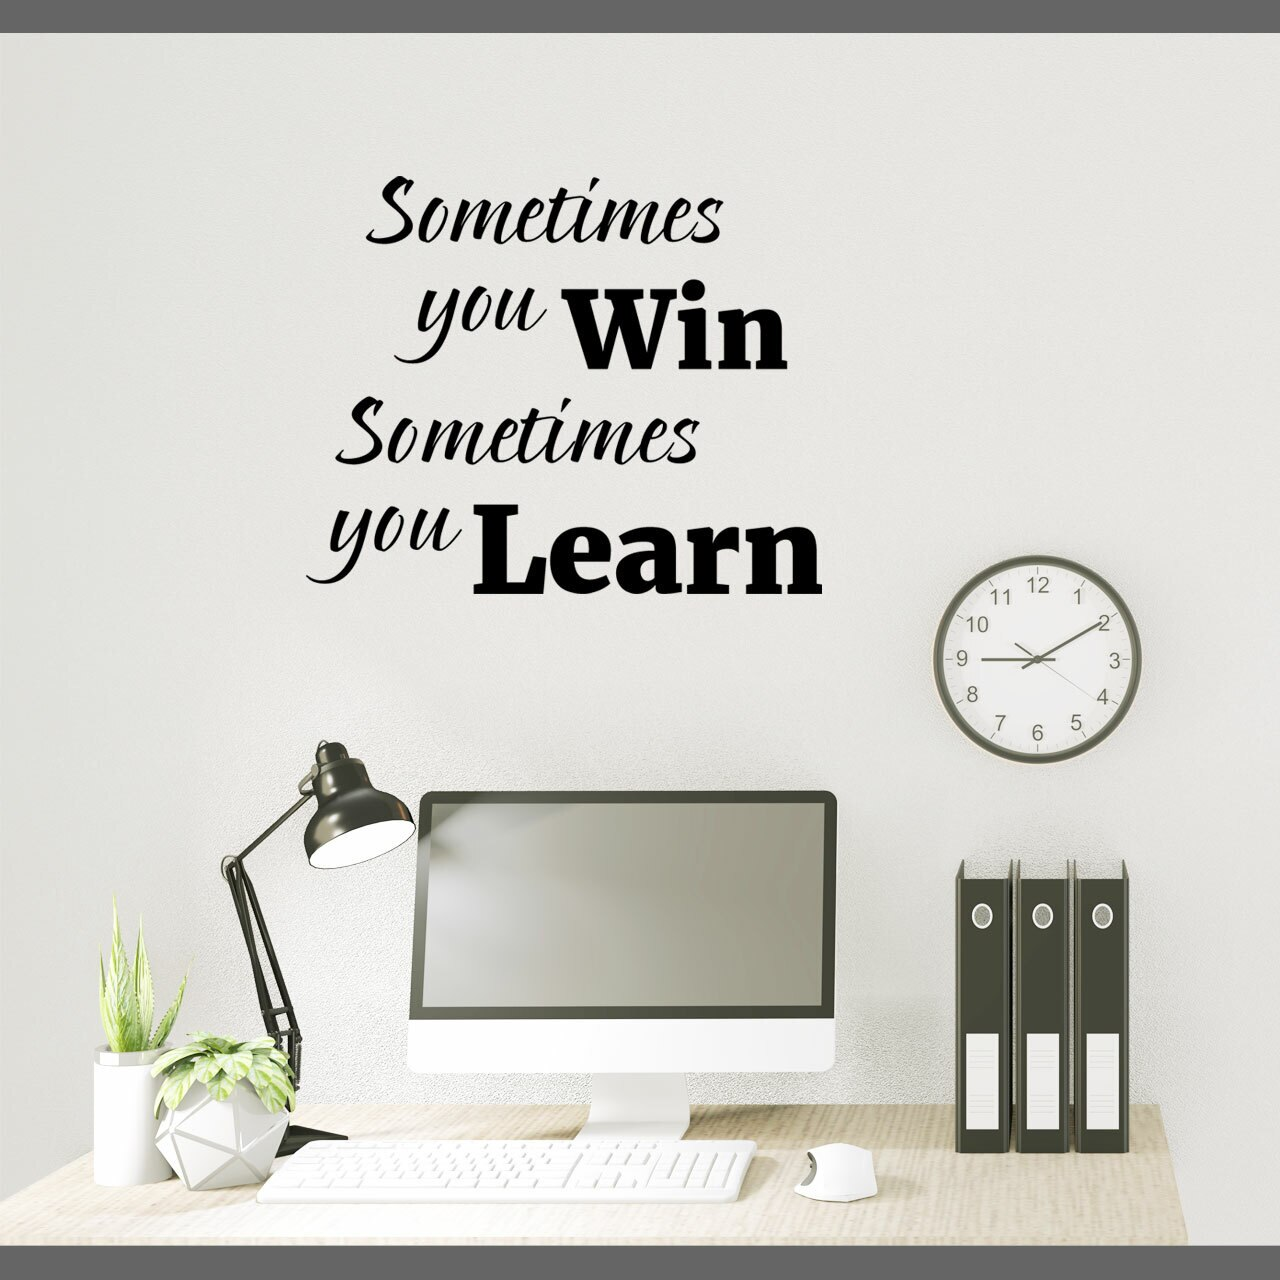 Sometimes you win sometimes you learn written on multiple lines in black vinyl lettering on a white wall over a computer desk